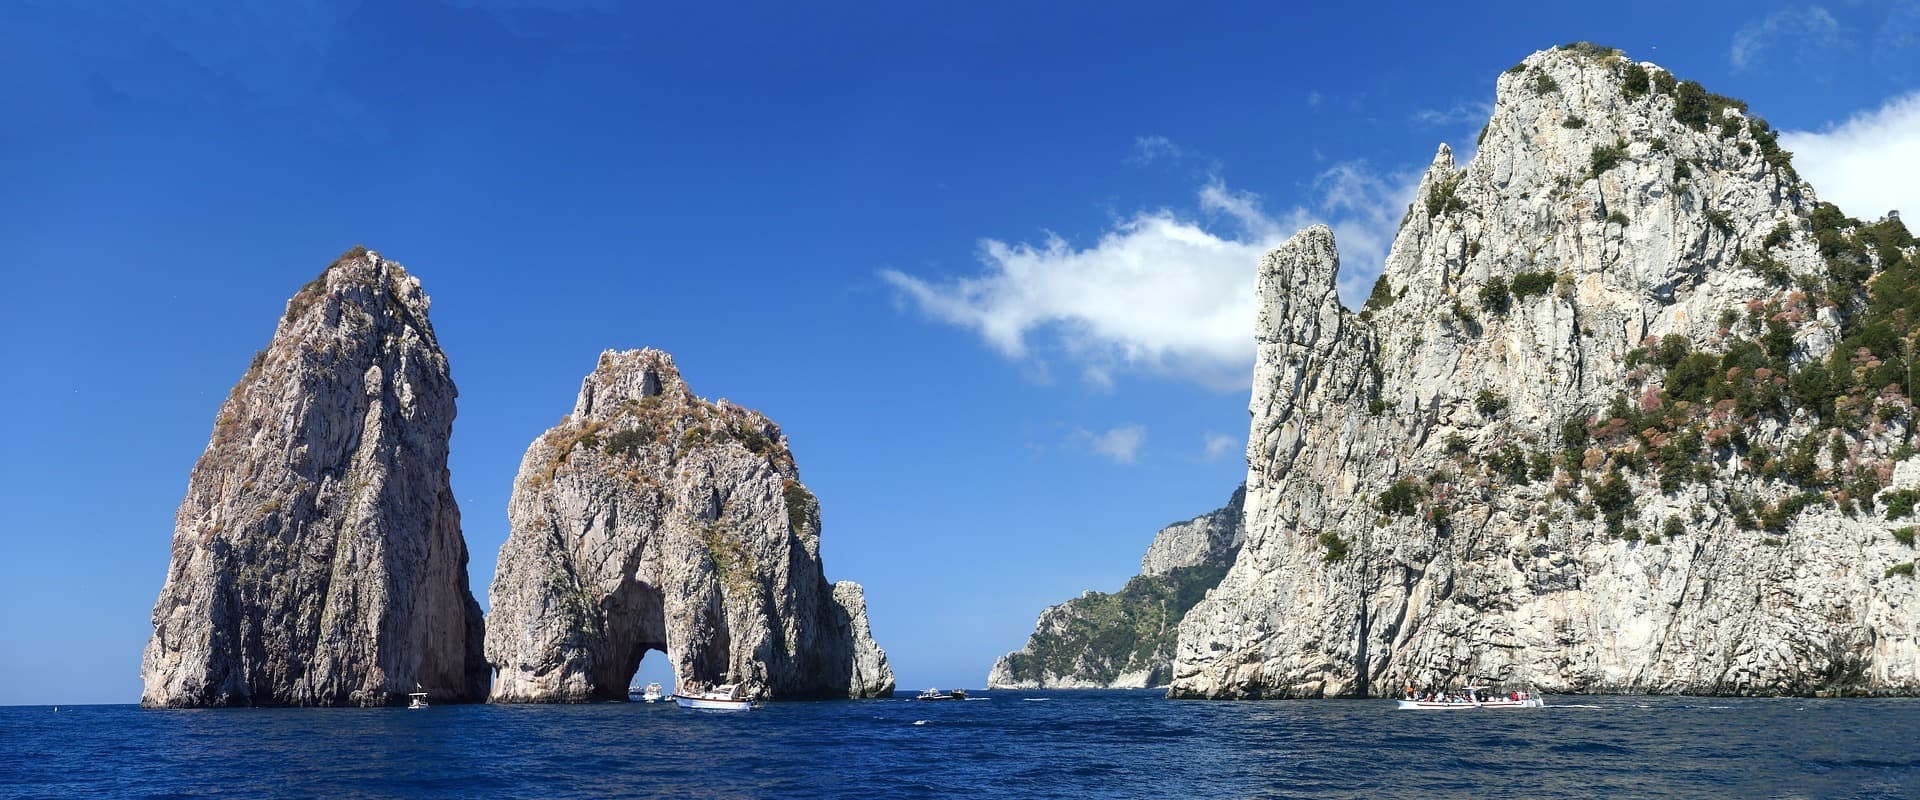 Liveaboards in Italië - LiveAboard.com